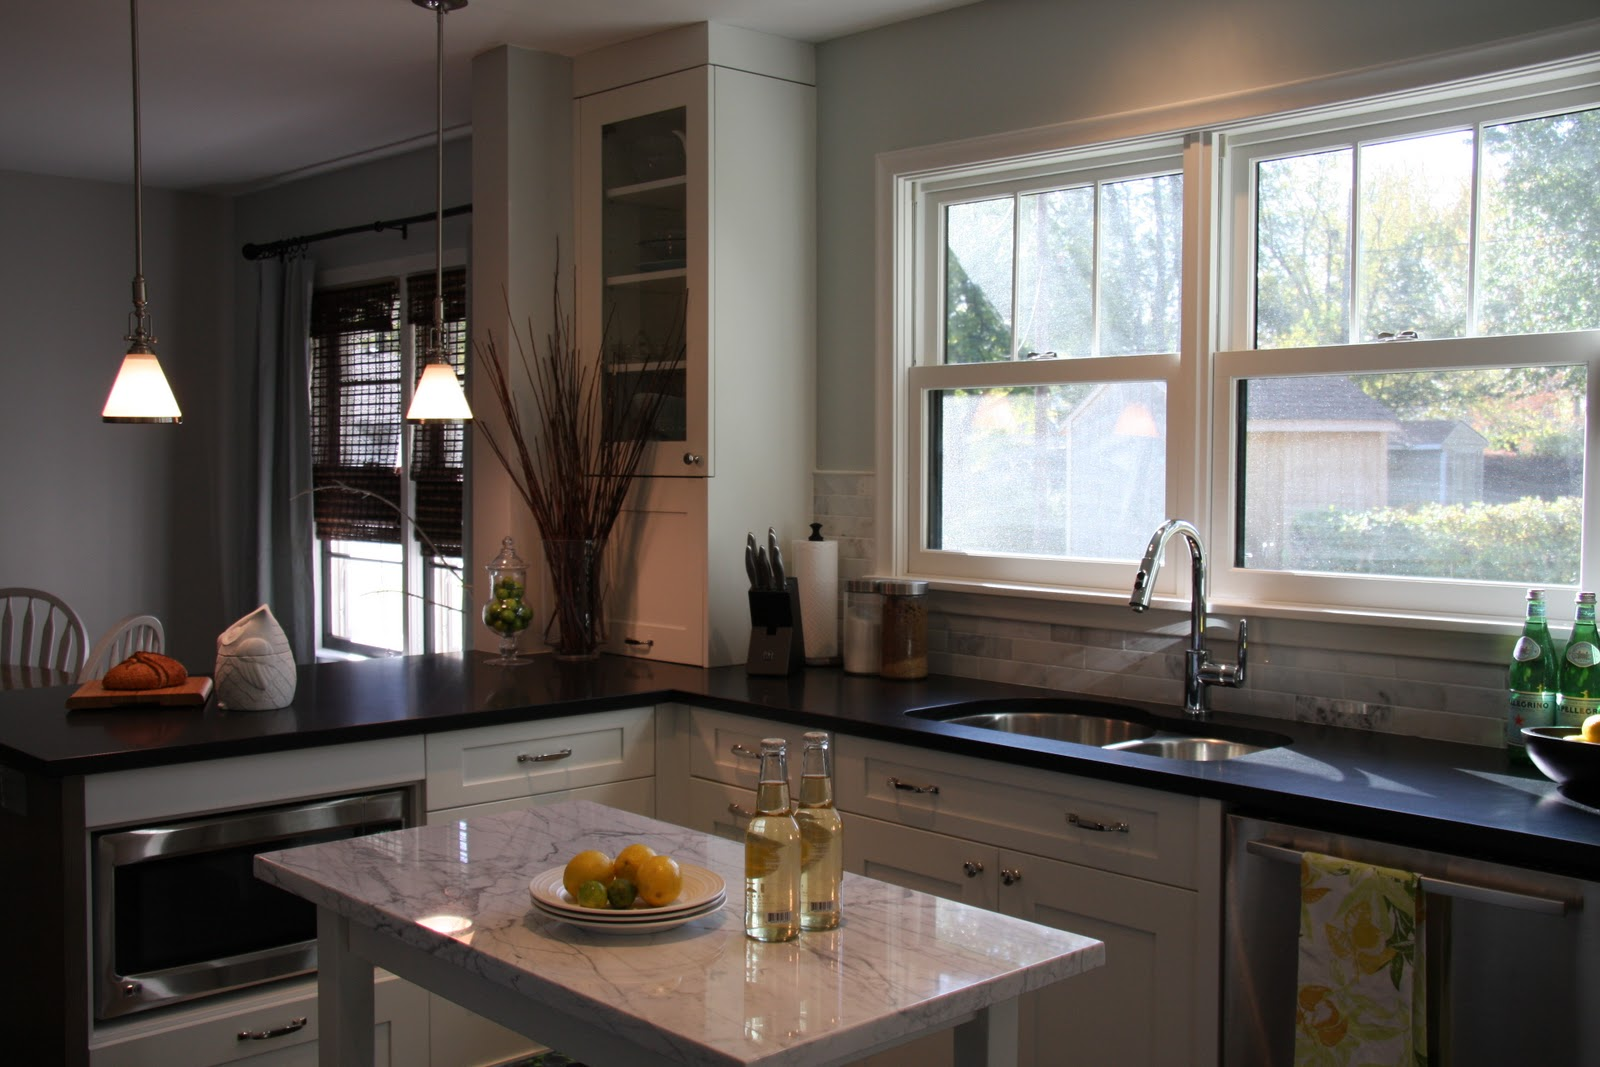 One wall kitchen floor plans -  Trends Are Moving Toward Floor Plans That Are More Compartmentalized This House Needed To Maintain Some Separation And Opening Up Just One Wall Keeps